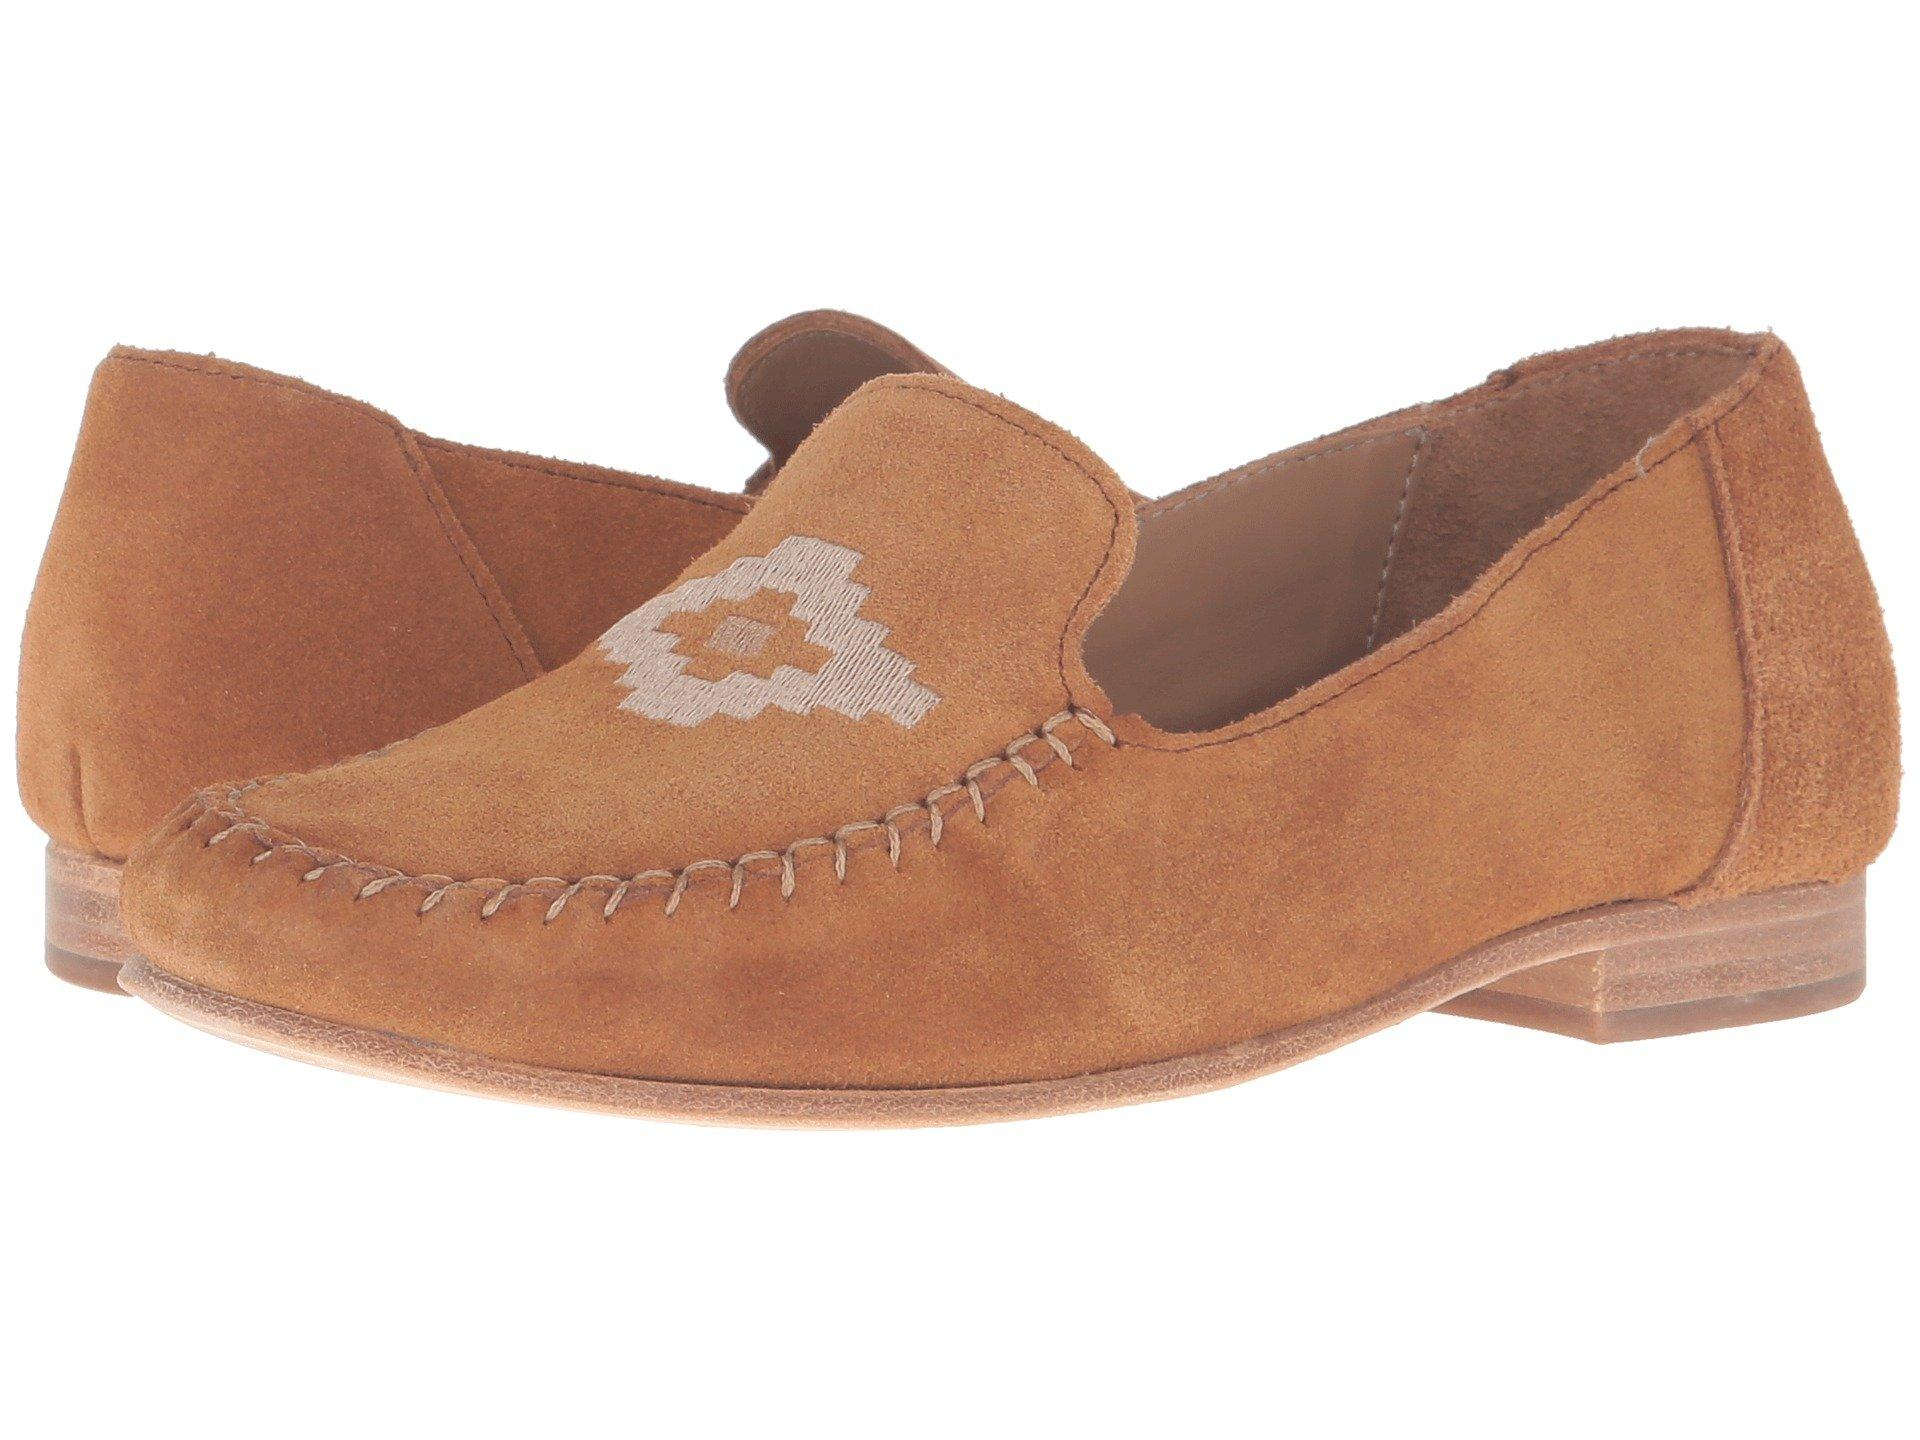 8b0a2b81402 Soludos Loafer Embroidered In Saddle Suede